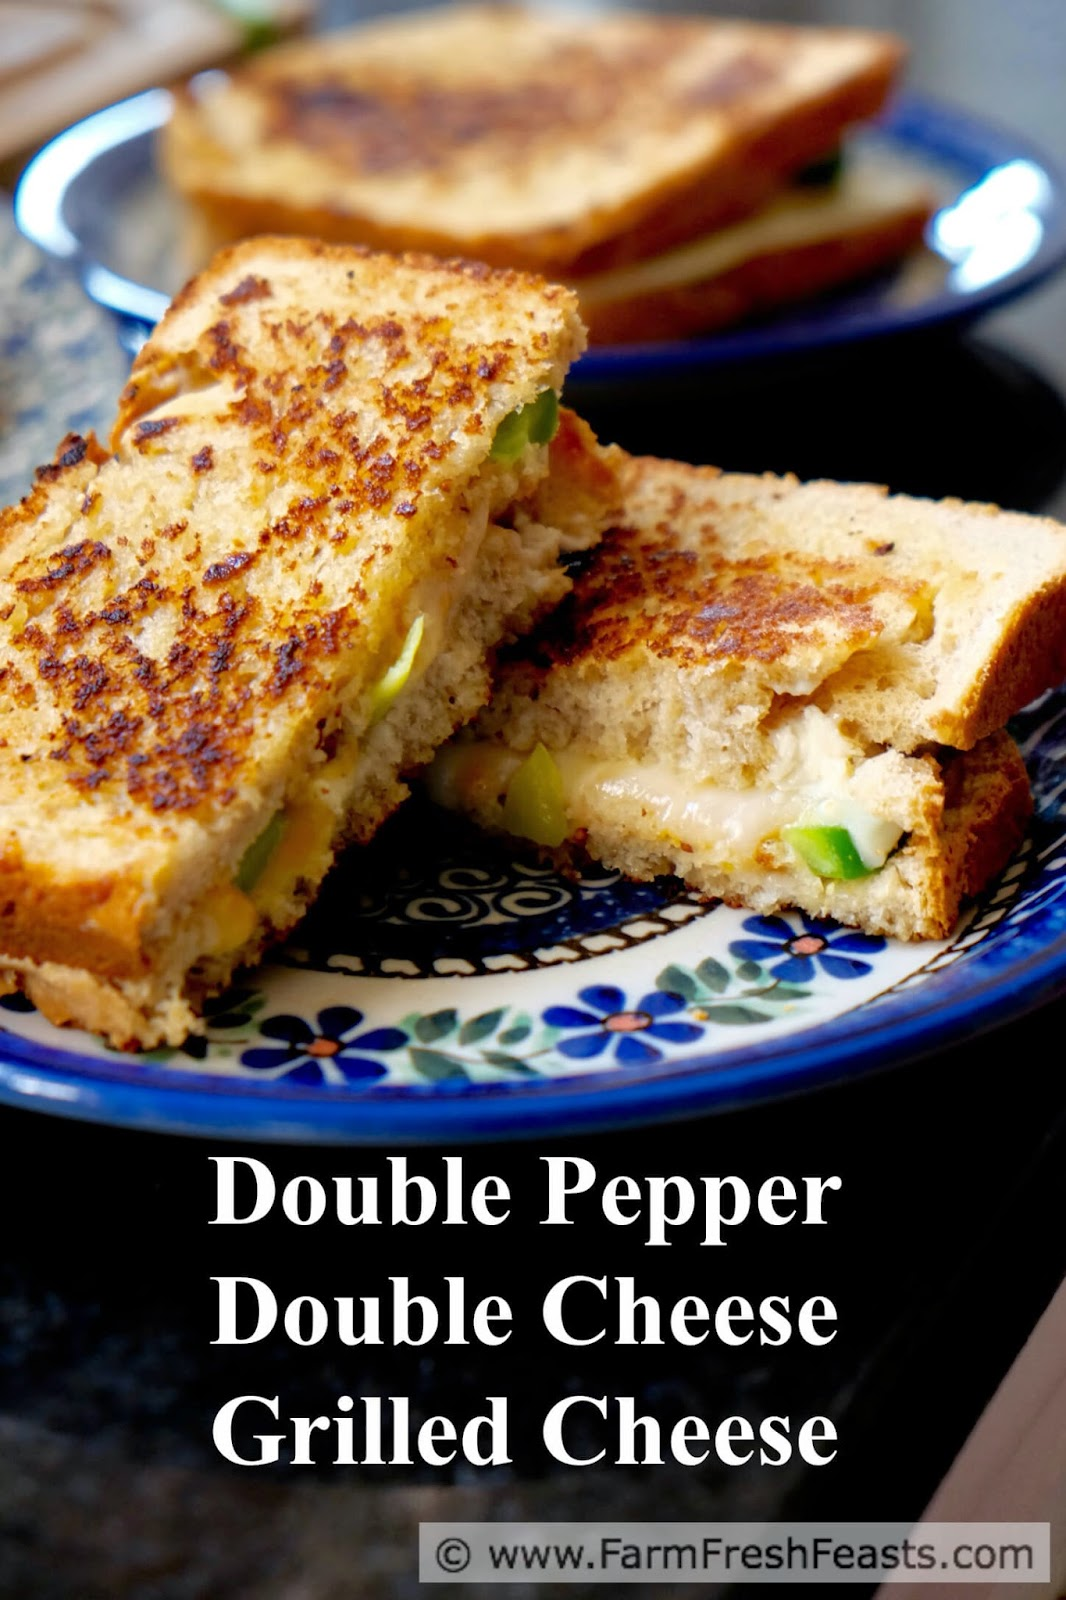 http://www.farmfreshfeasts.com/2015/04/double-pepper-double-cheese-grilled.html